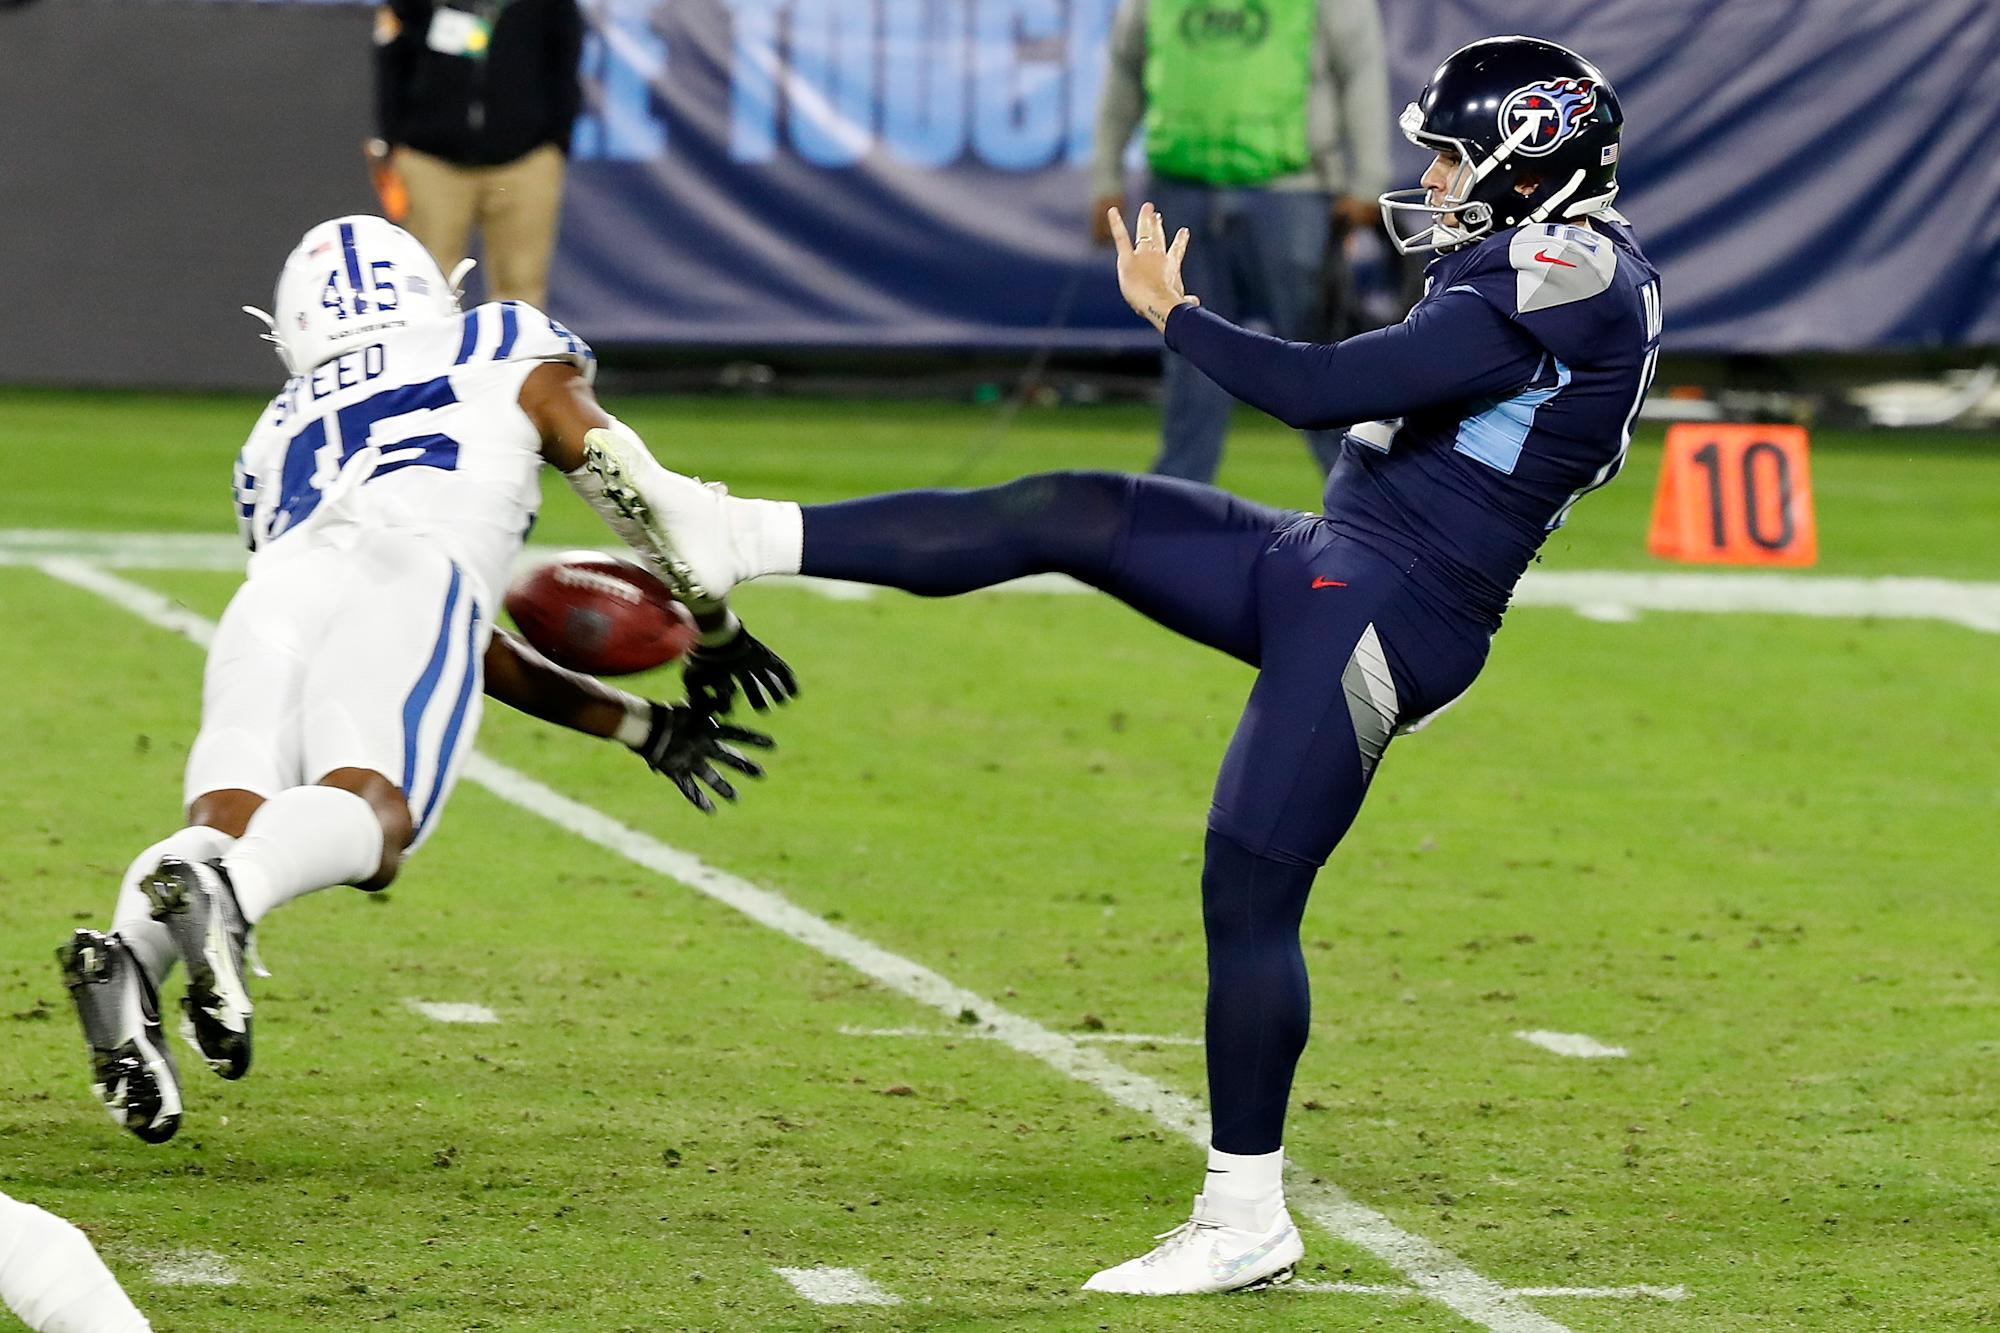 NFL: Titans punter signed from FedEx has brutal night